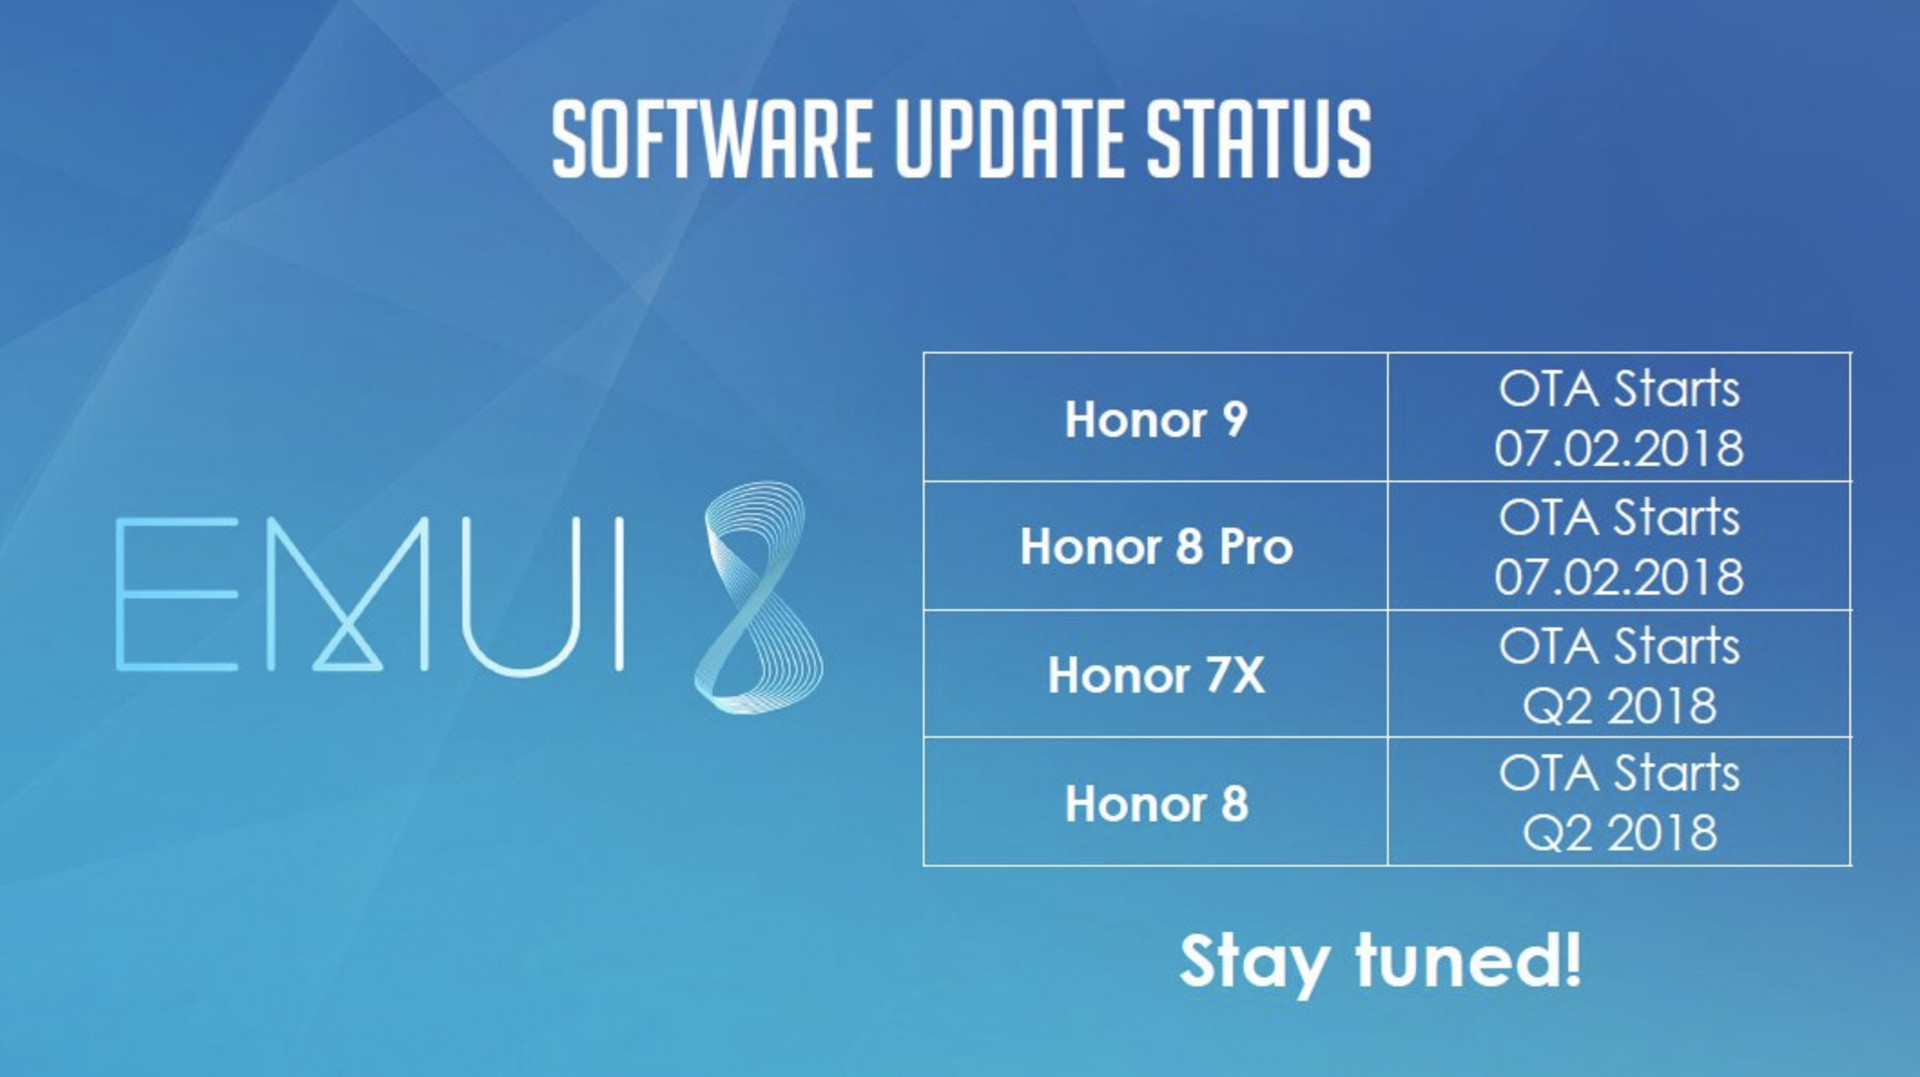 EMUI 8 rollout schedule for various Honor devices detailed